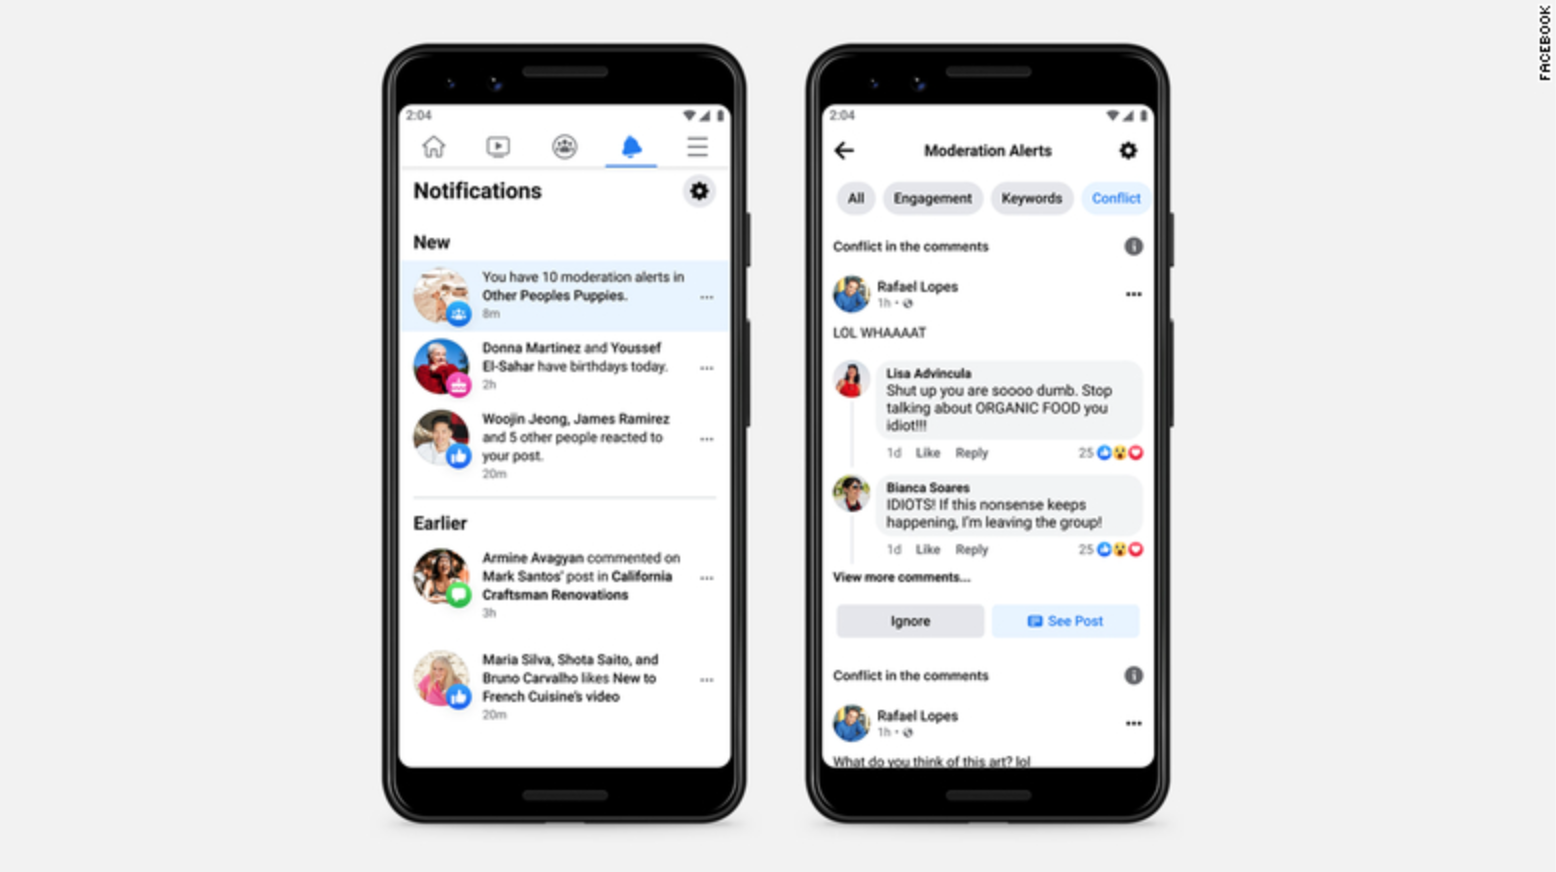 Facebook is testing AI to get you to stop fighting in its groups